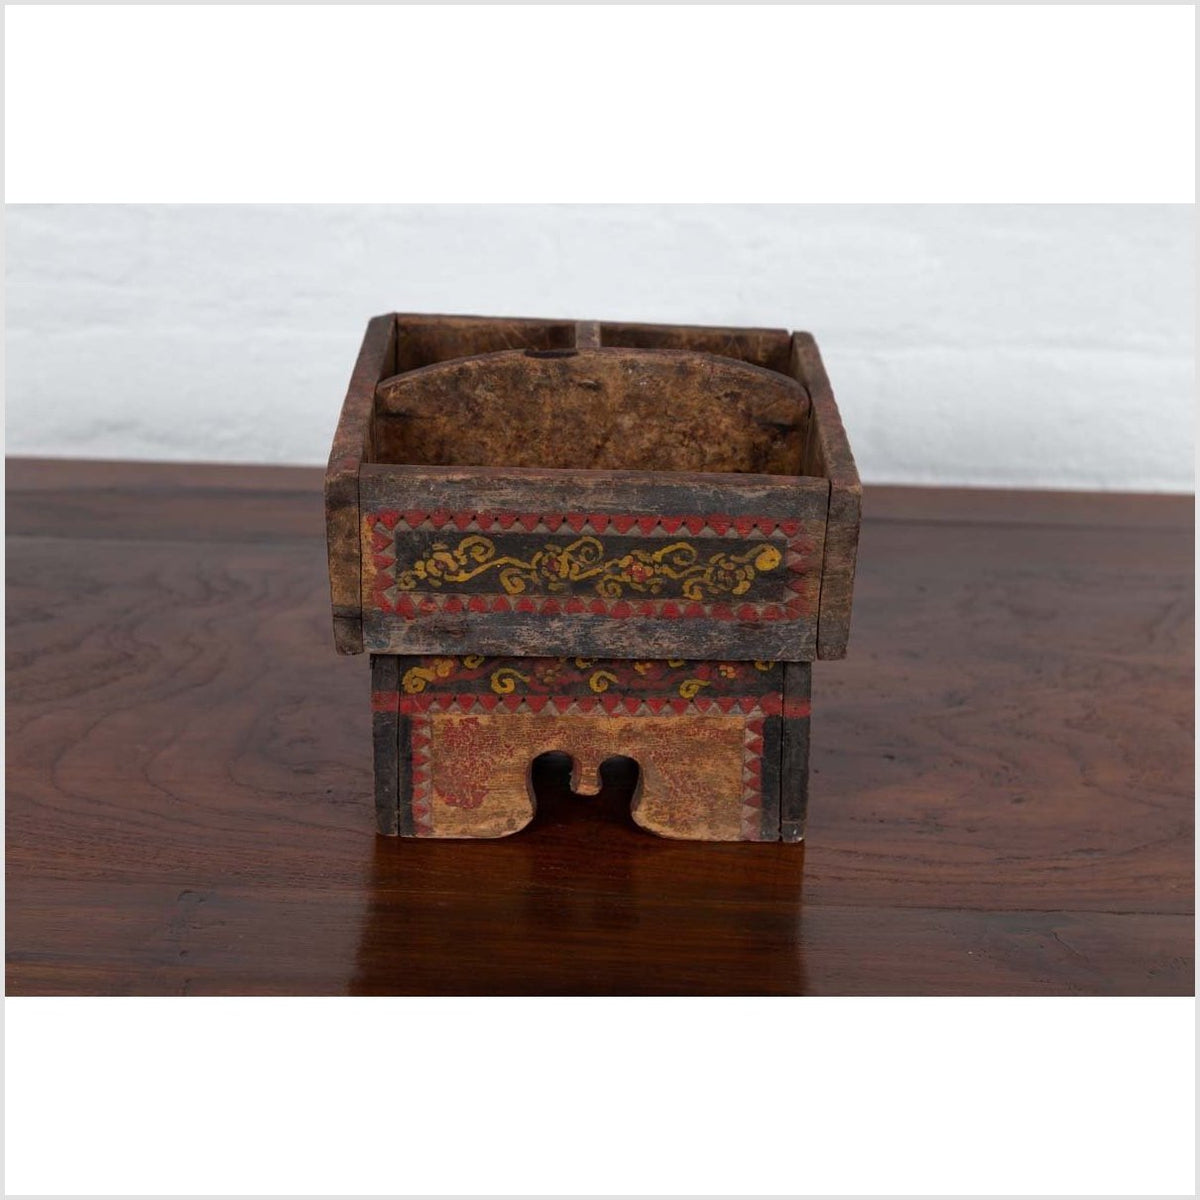 Petite Thai Rustic Betel Nut Box with Weathered Patina and Painted Décor